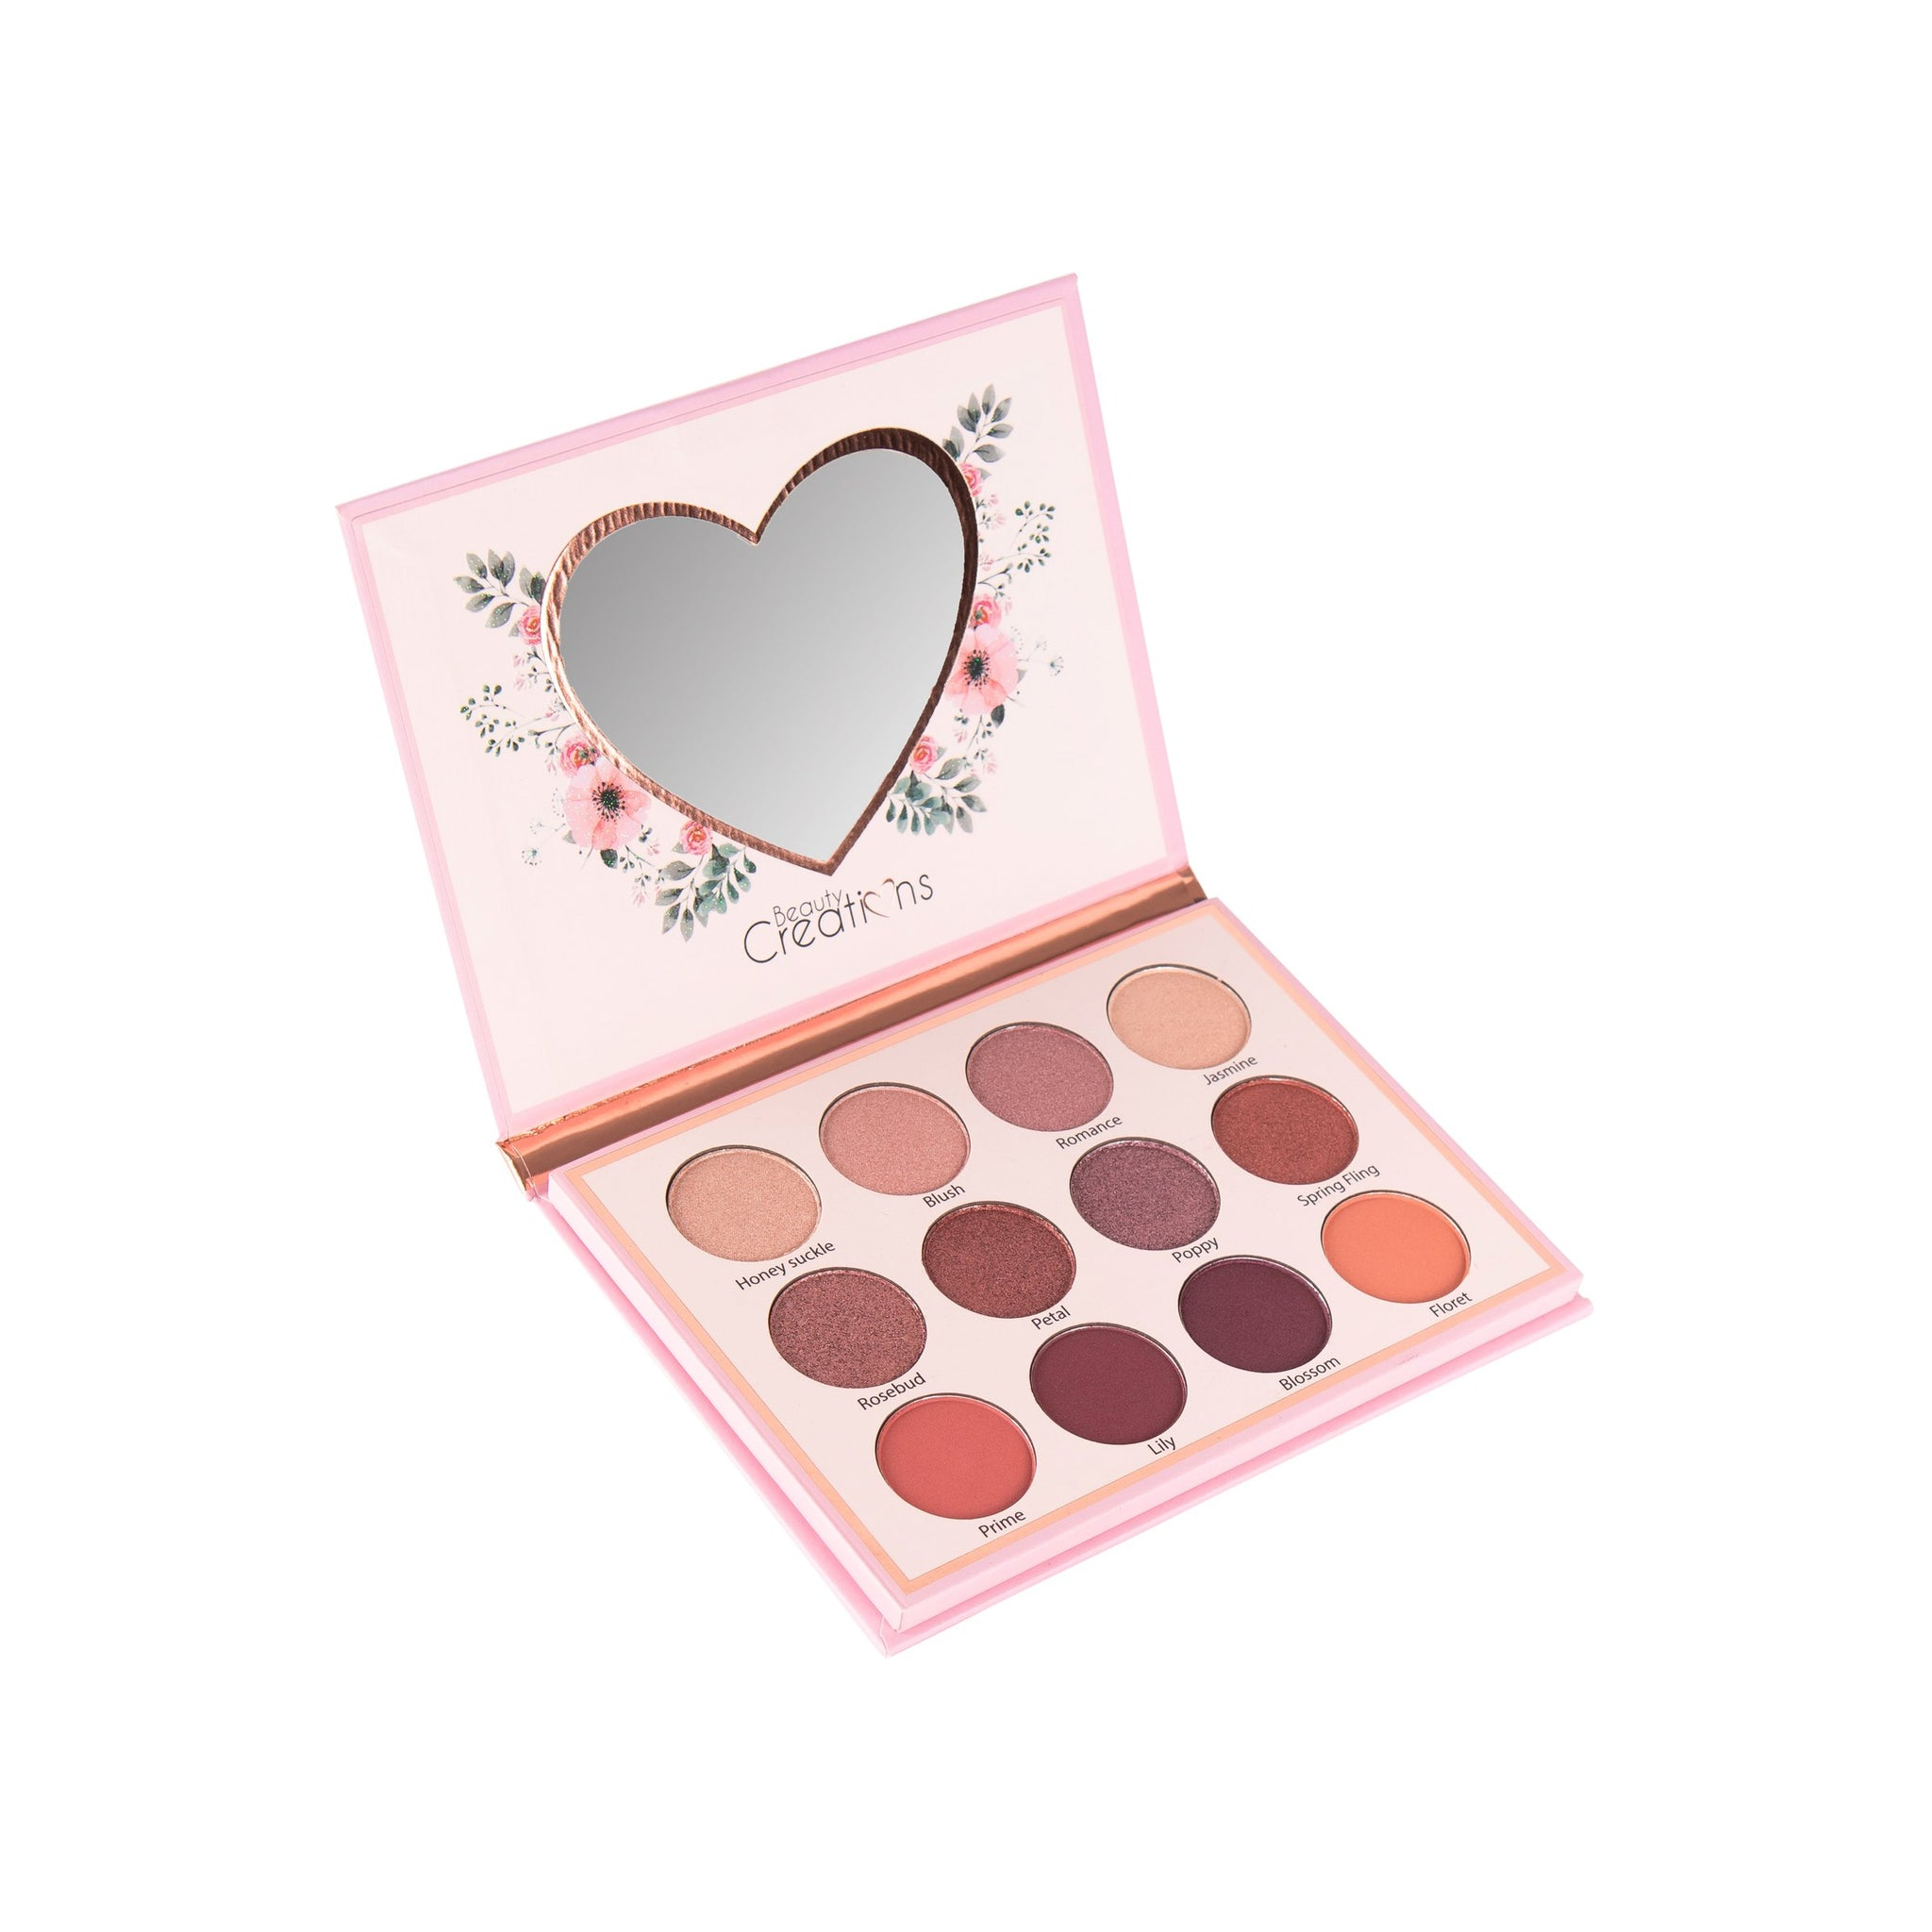 Beauty Creations | Floral Bloom Eye Palette